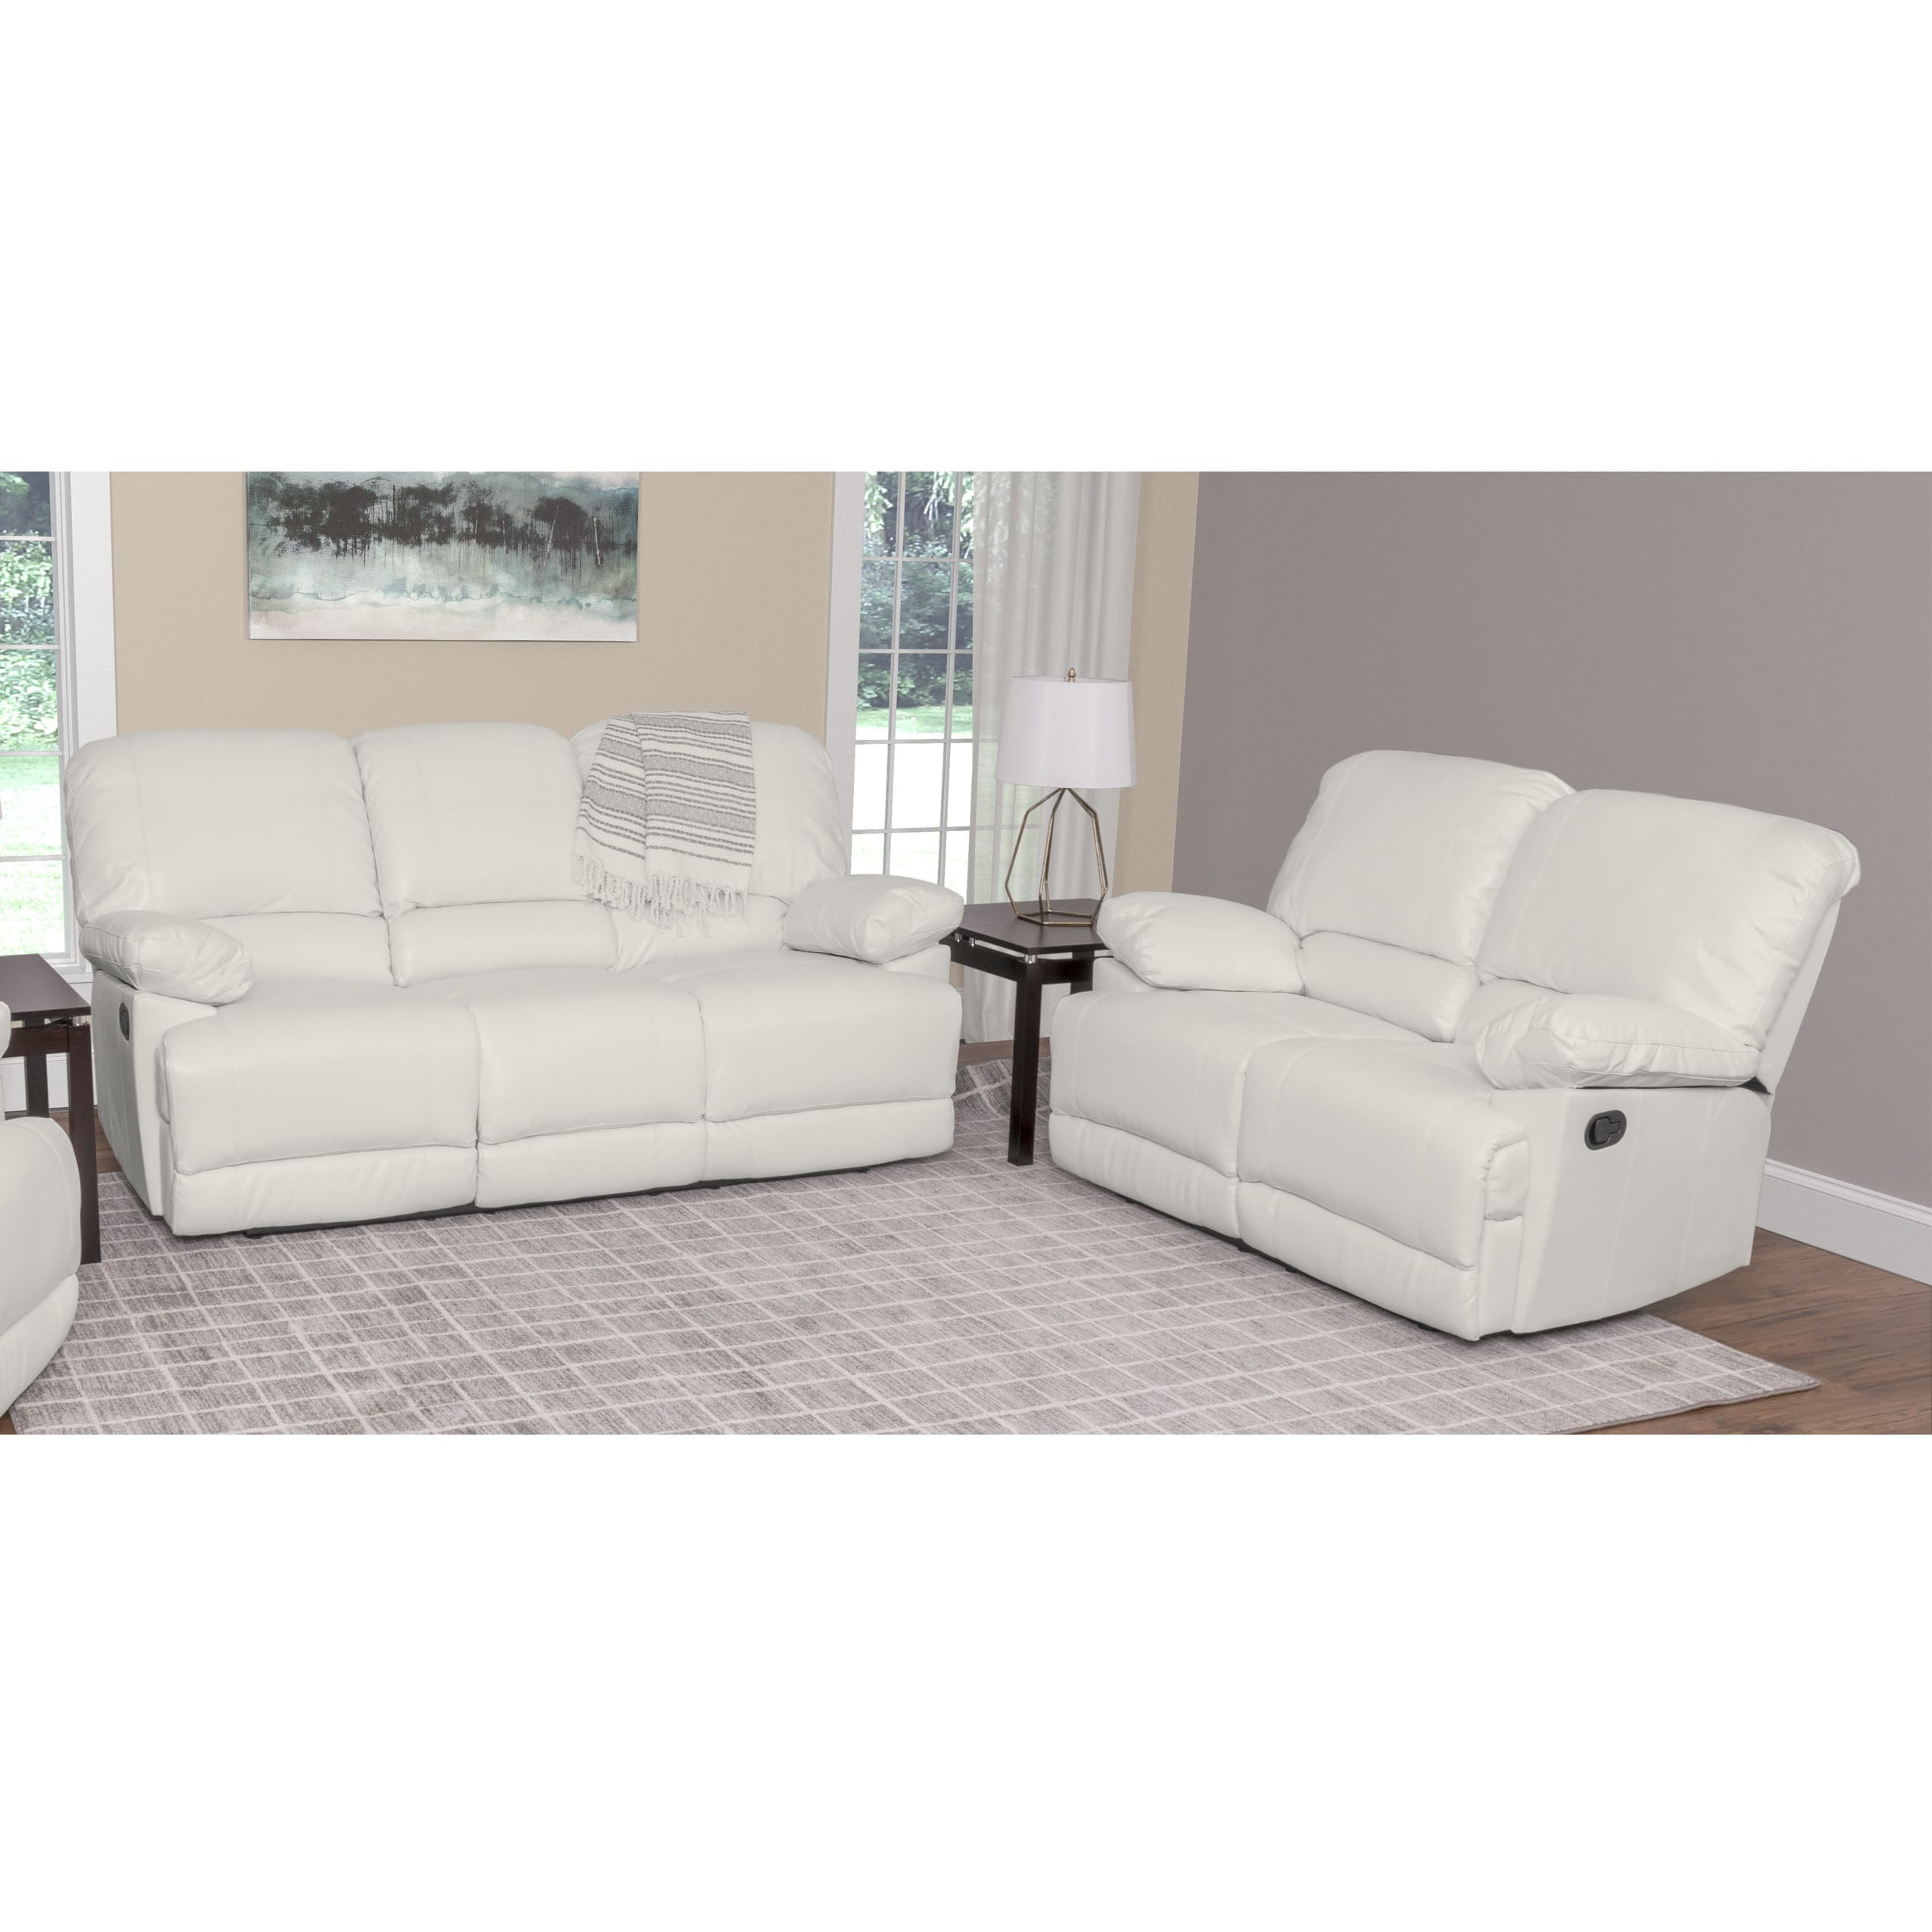 CorLiving Lea 2-piece Bonded Leather Reclining Living Room Set | eBay